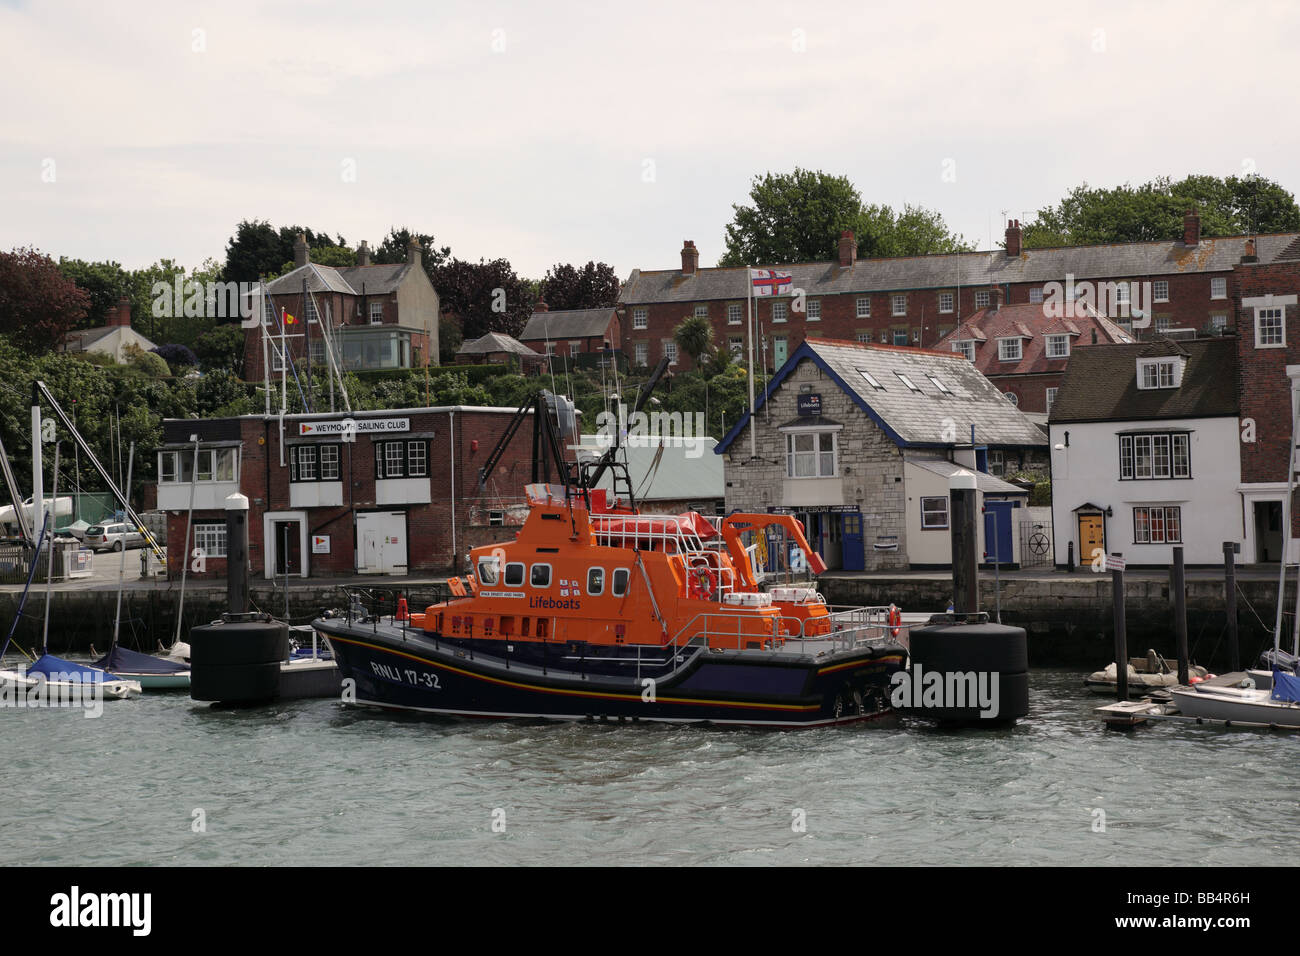 RNL Lifeboat moored in Weymouth, Dorset, England - Stock Image